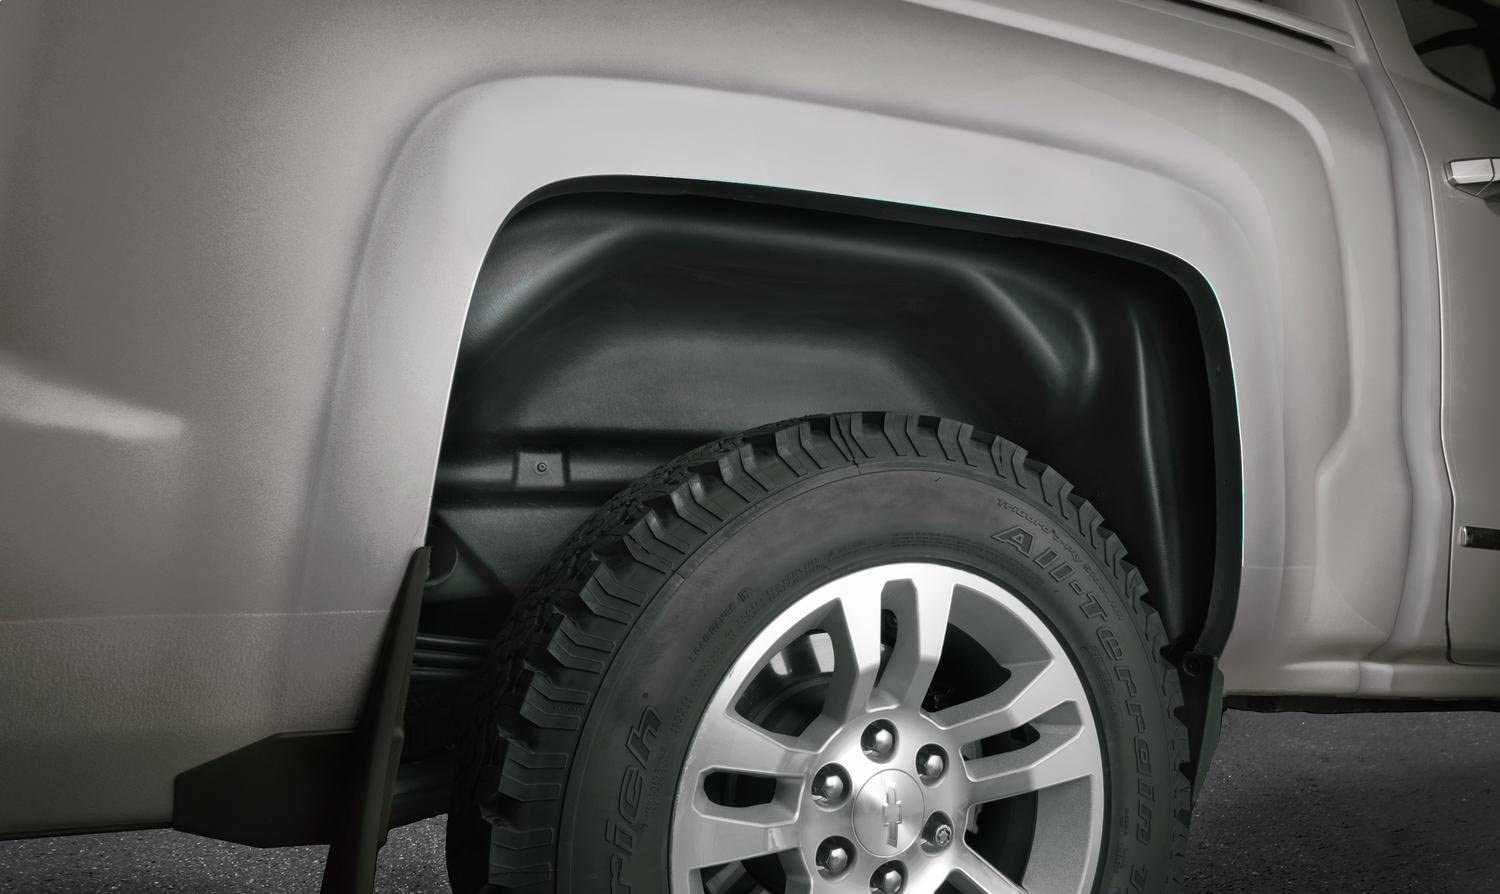 will not fit Raptor Husky Liners 79121 Black Wheel Well Guards Rear Wheel Well Guards Fits 2015-2019 Ford F-150